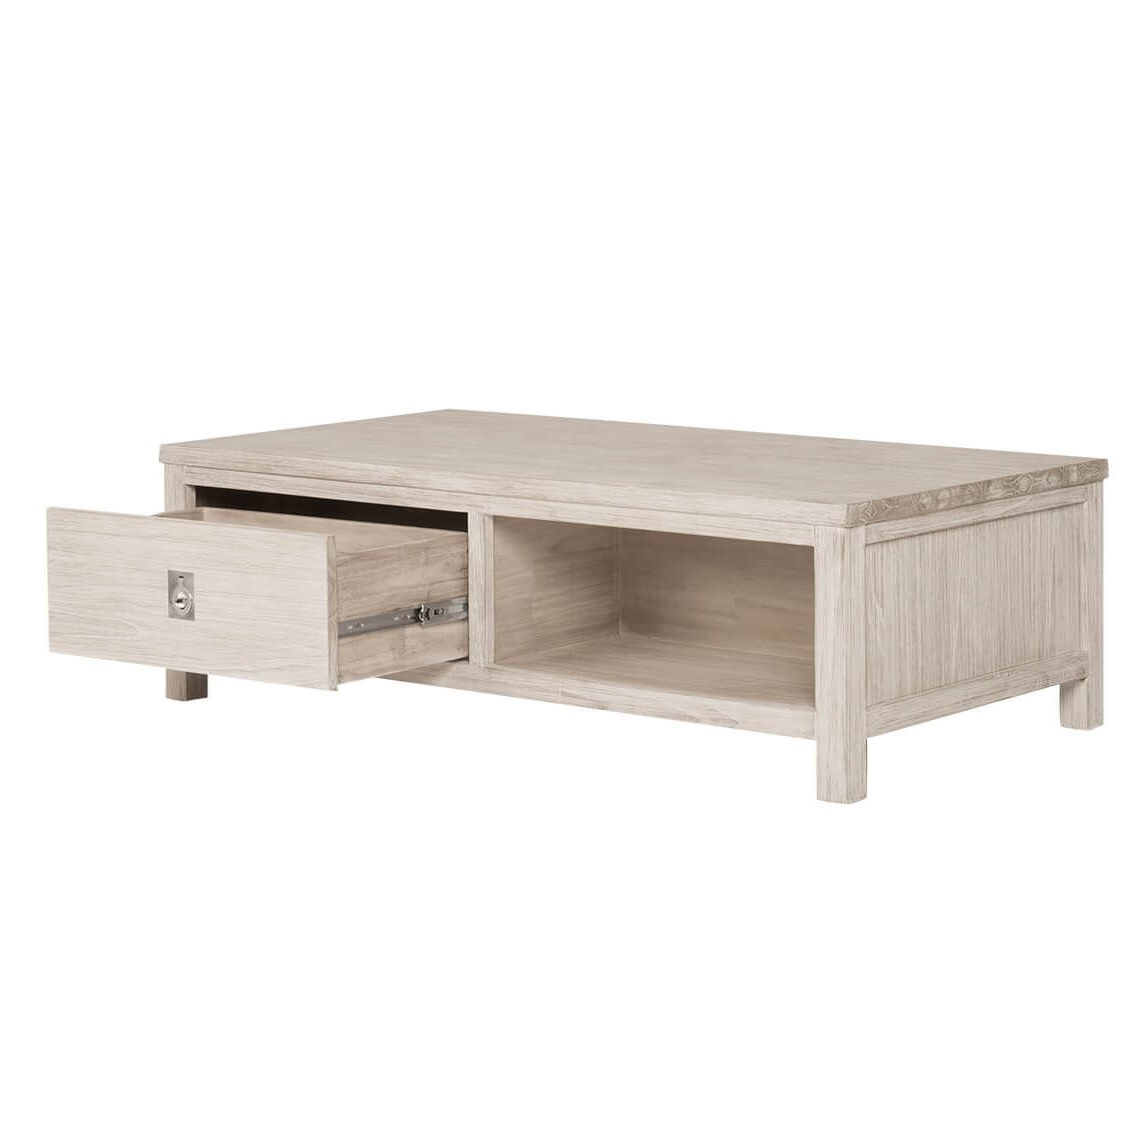 2018 White Wash 2 Drawer/1 Door Coffee Tables Intended For Cancun Coffee (View 7 of 20)